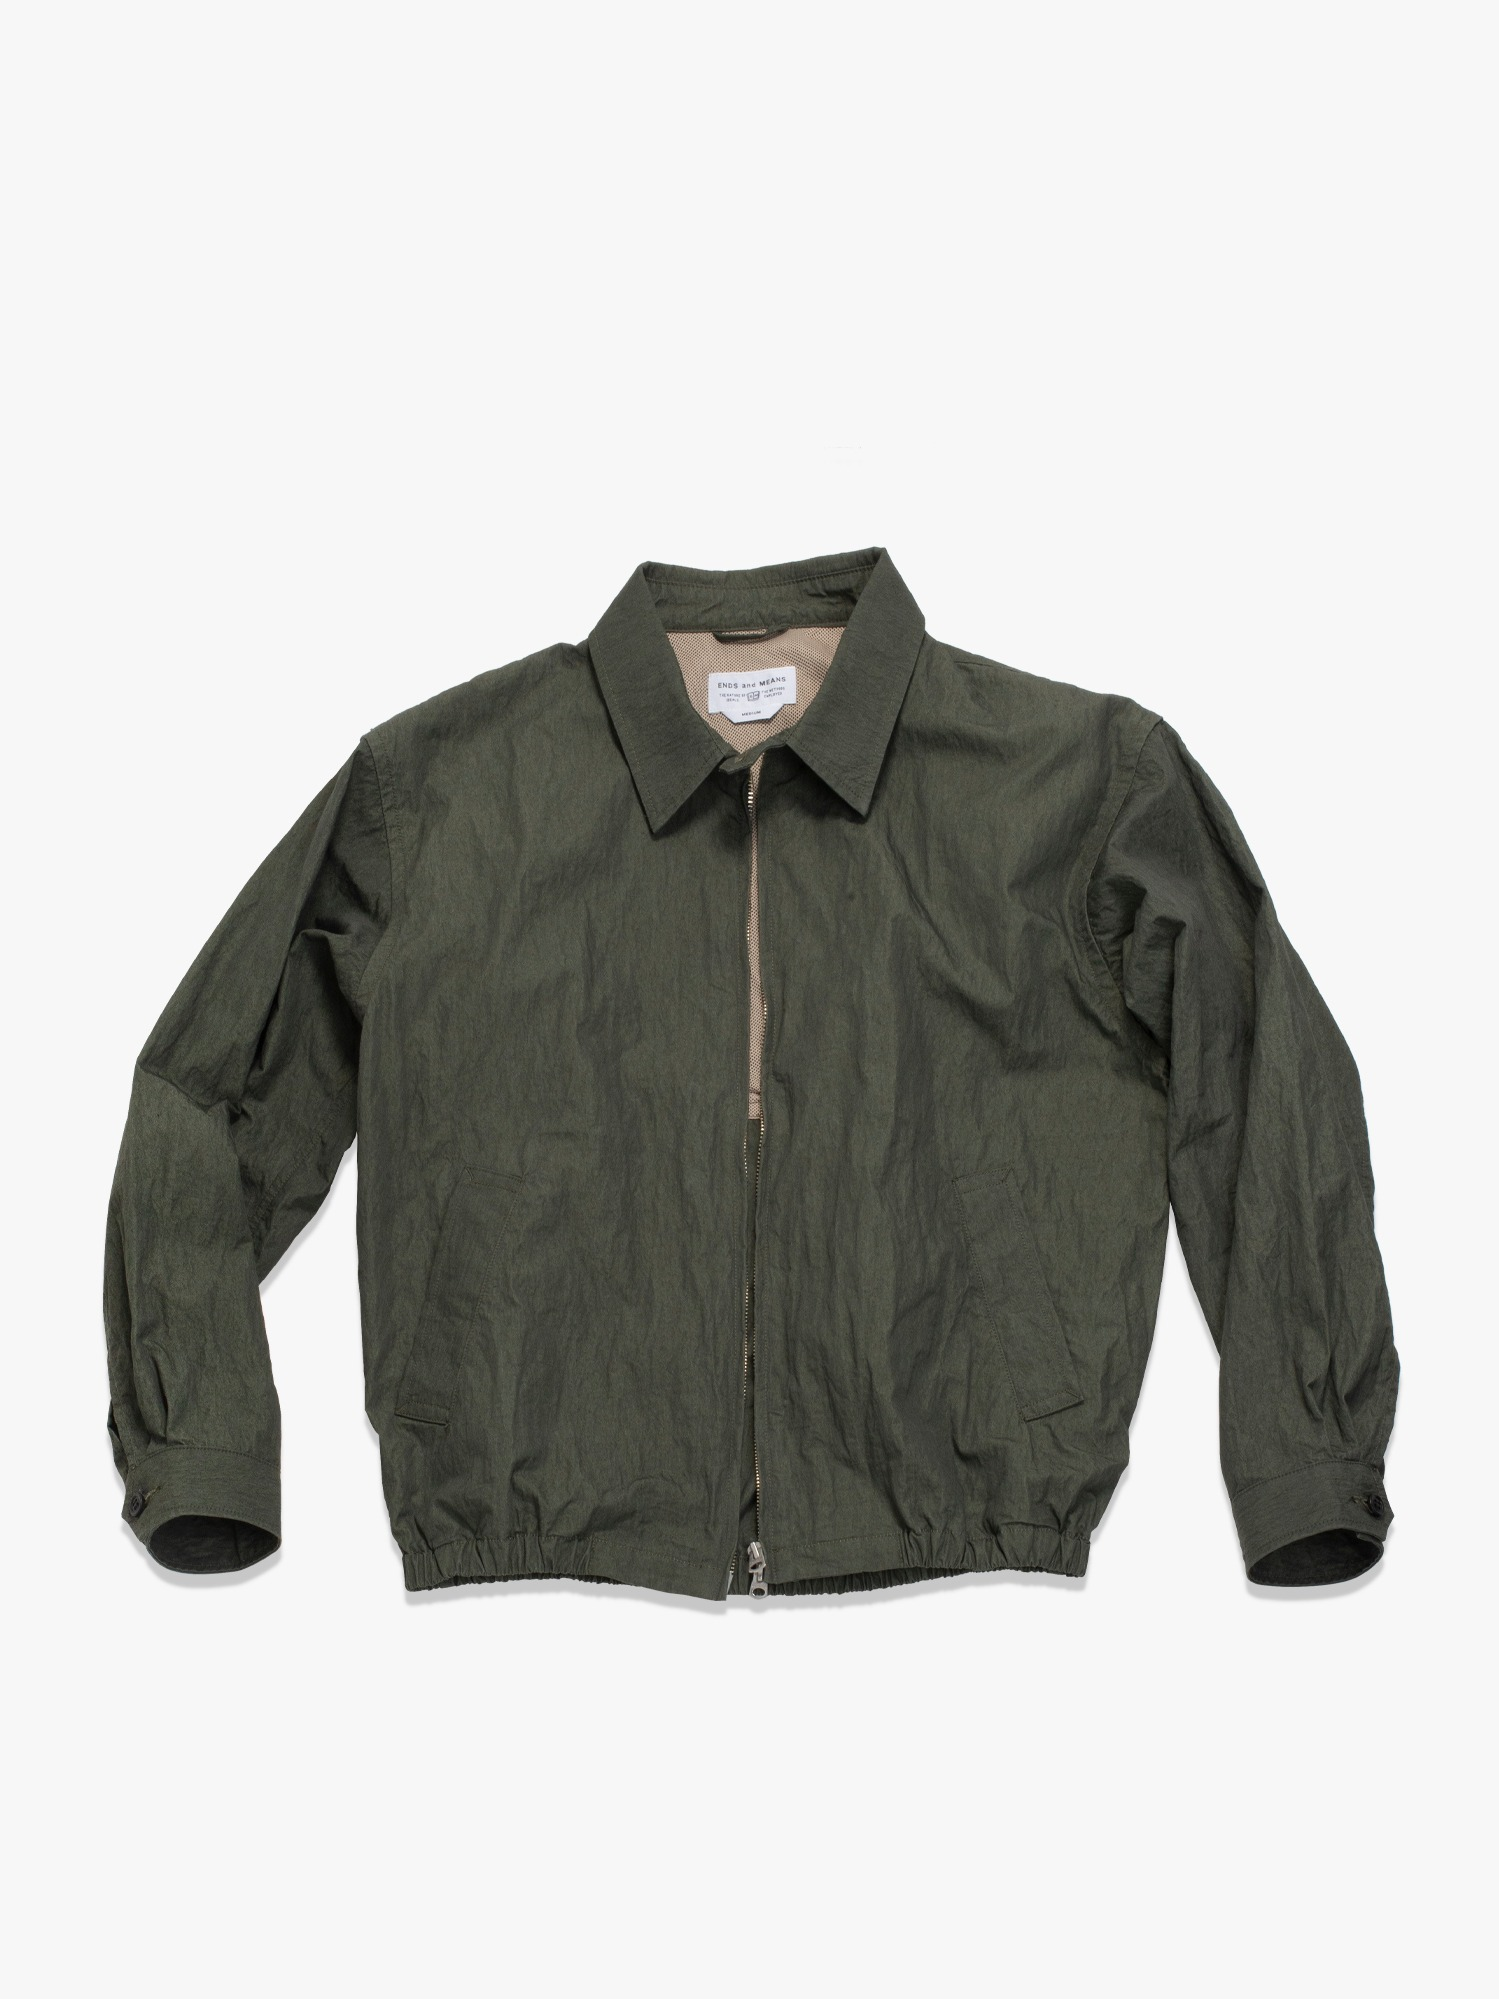 swing jacket(grds exclusive)